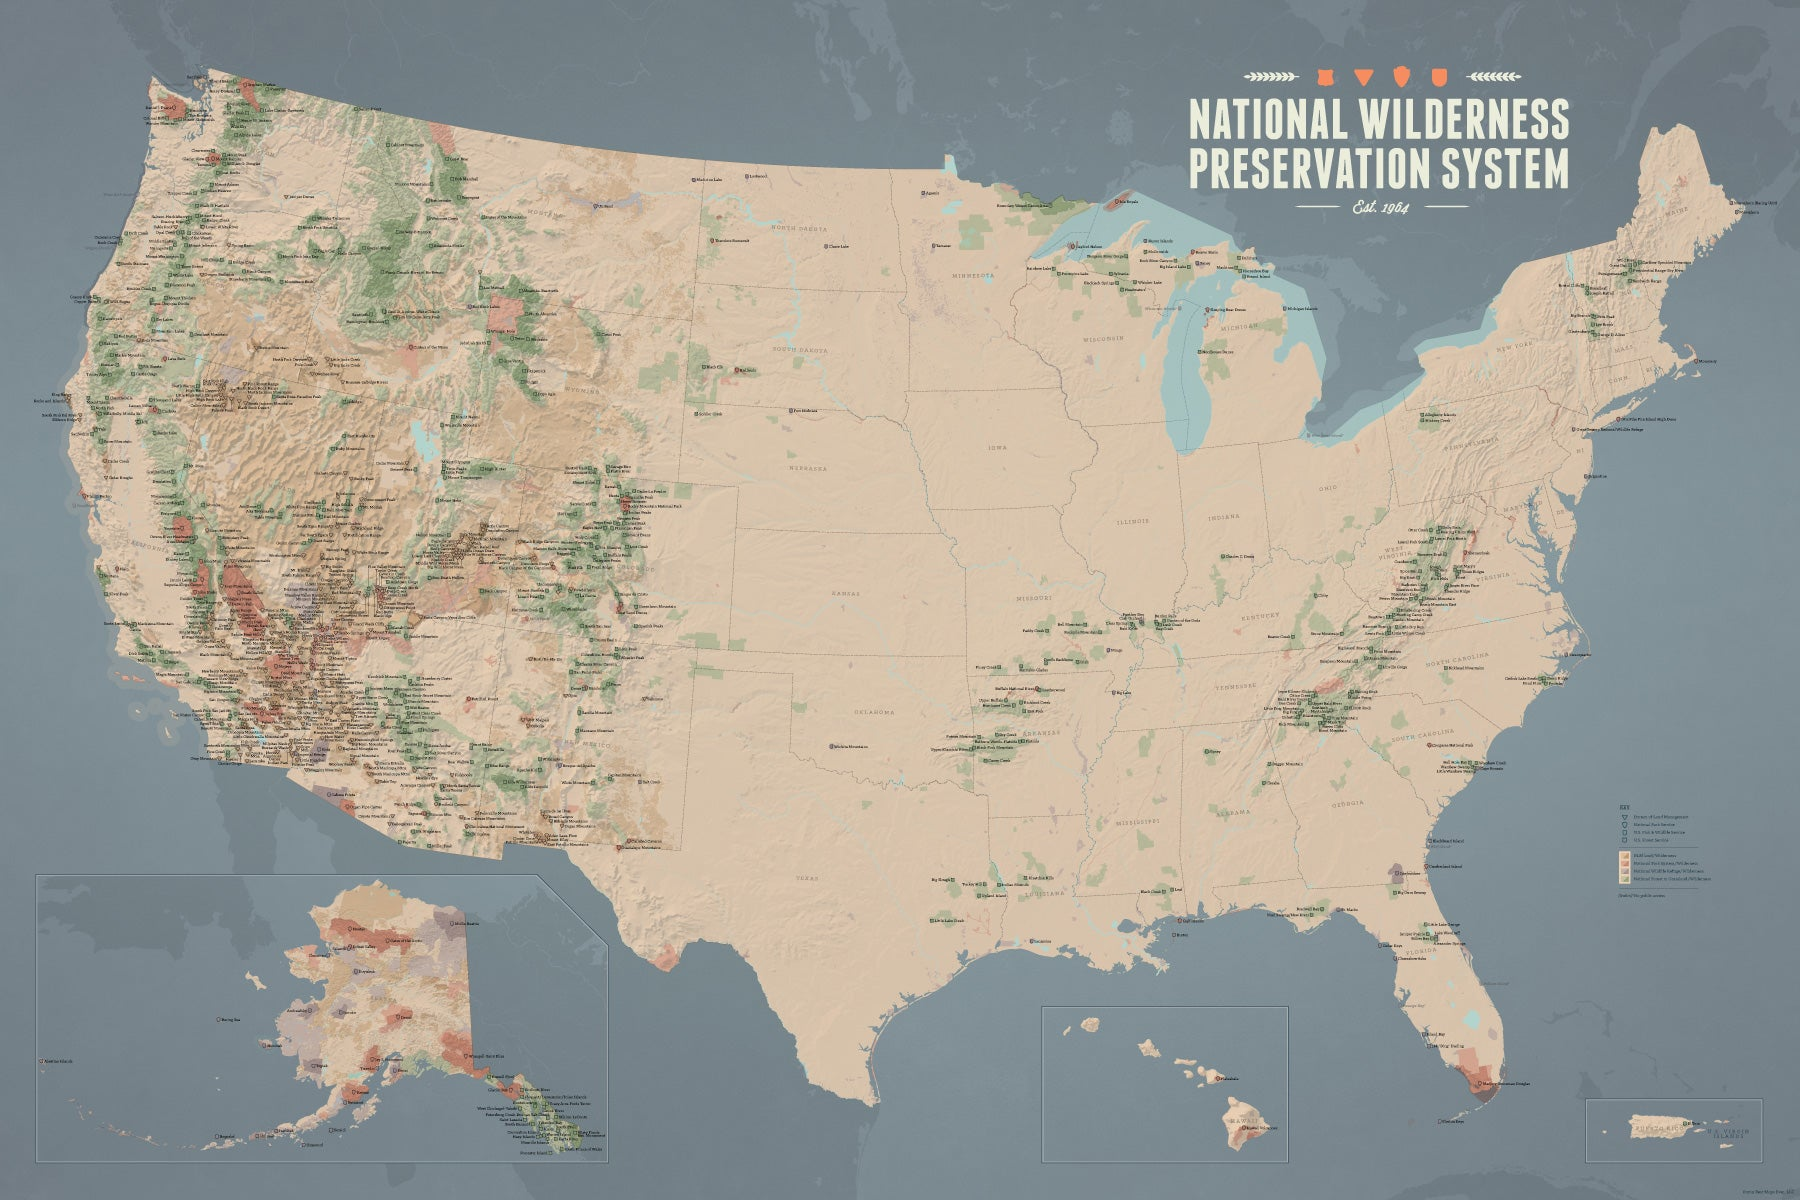 Us Wilderness Areas Map US National Wilderness Preservation System Map 24x36 Poster   Best